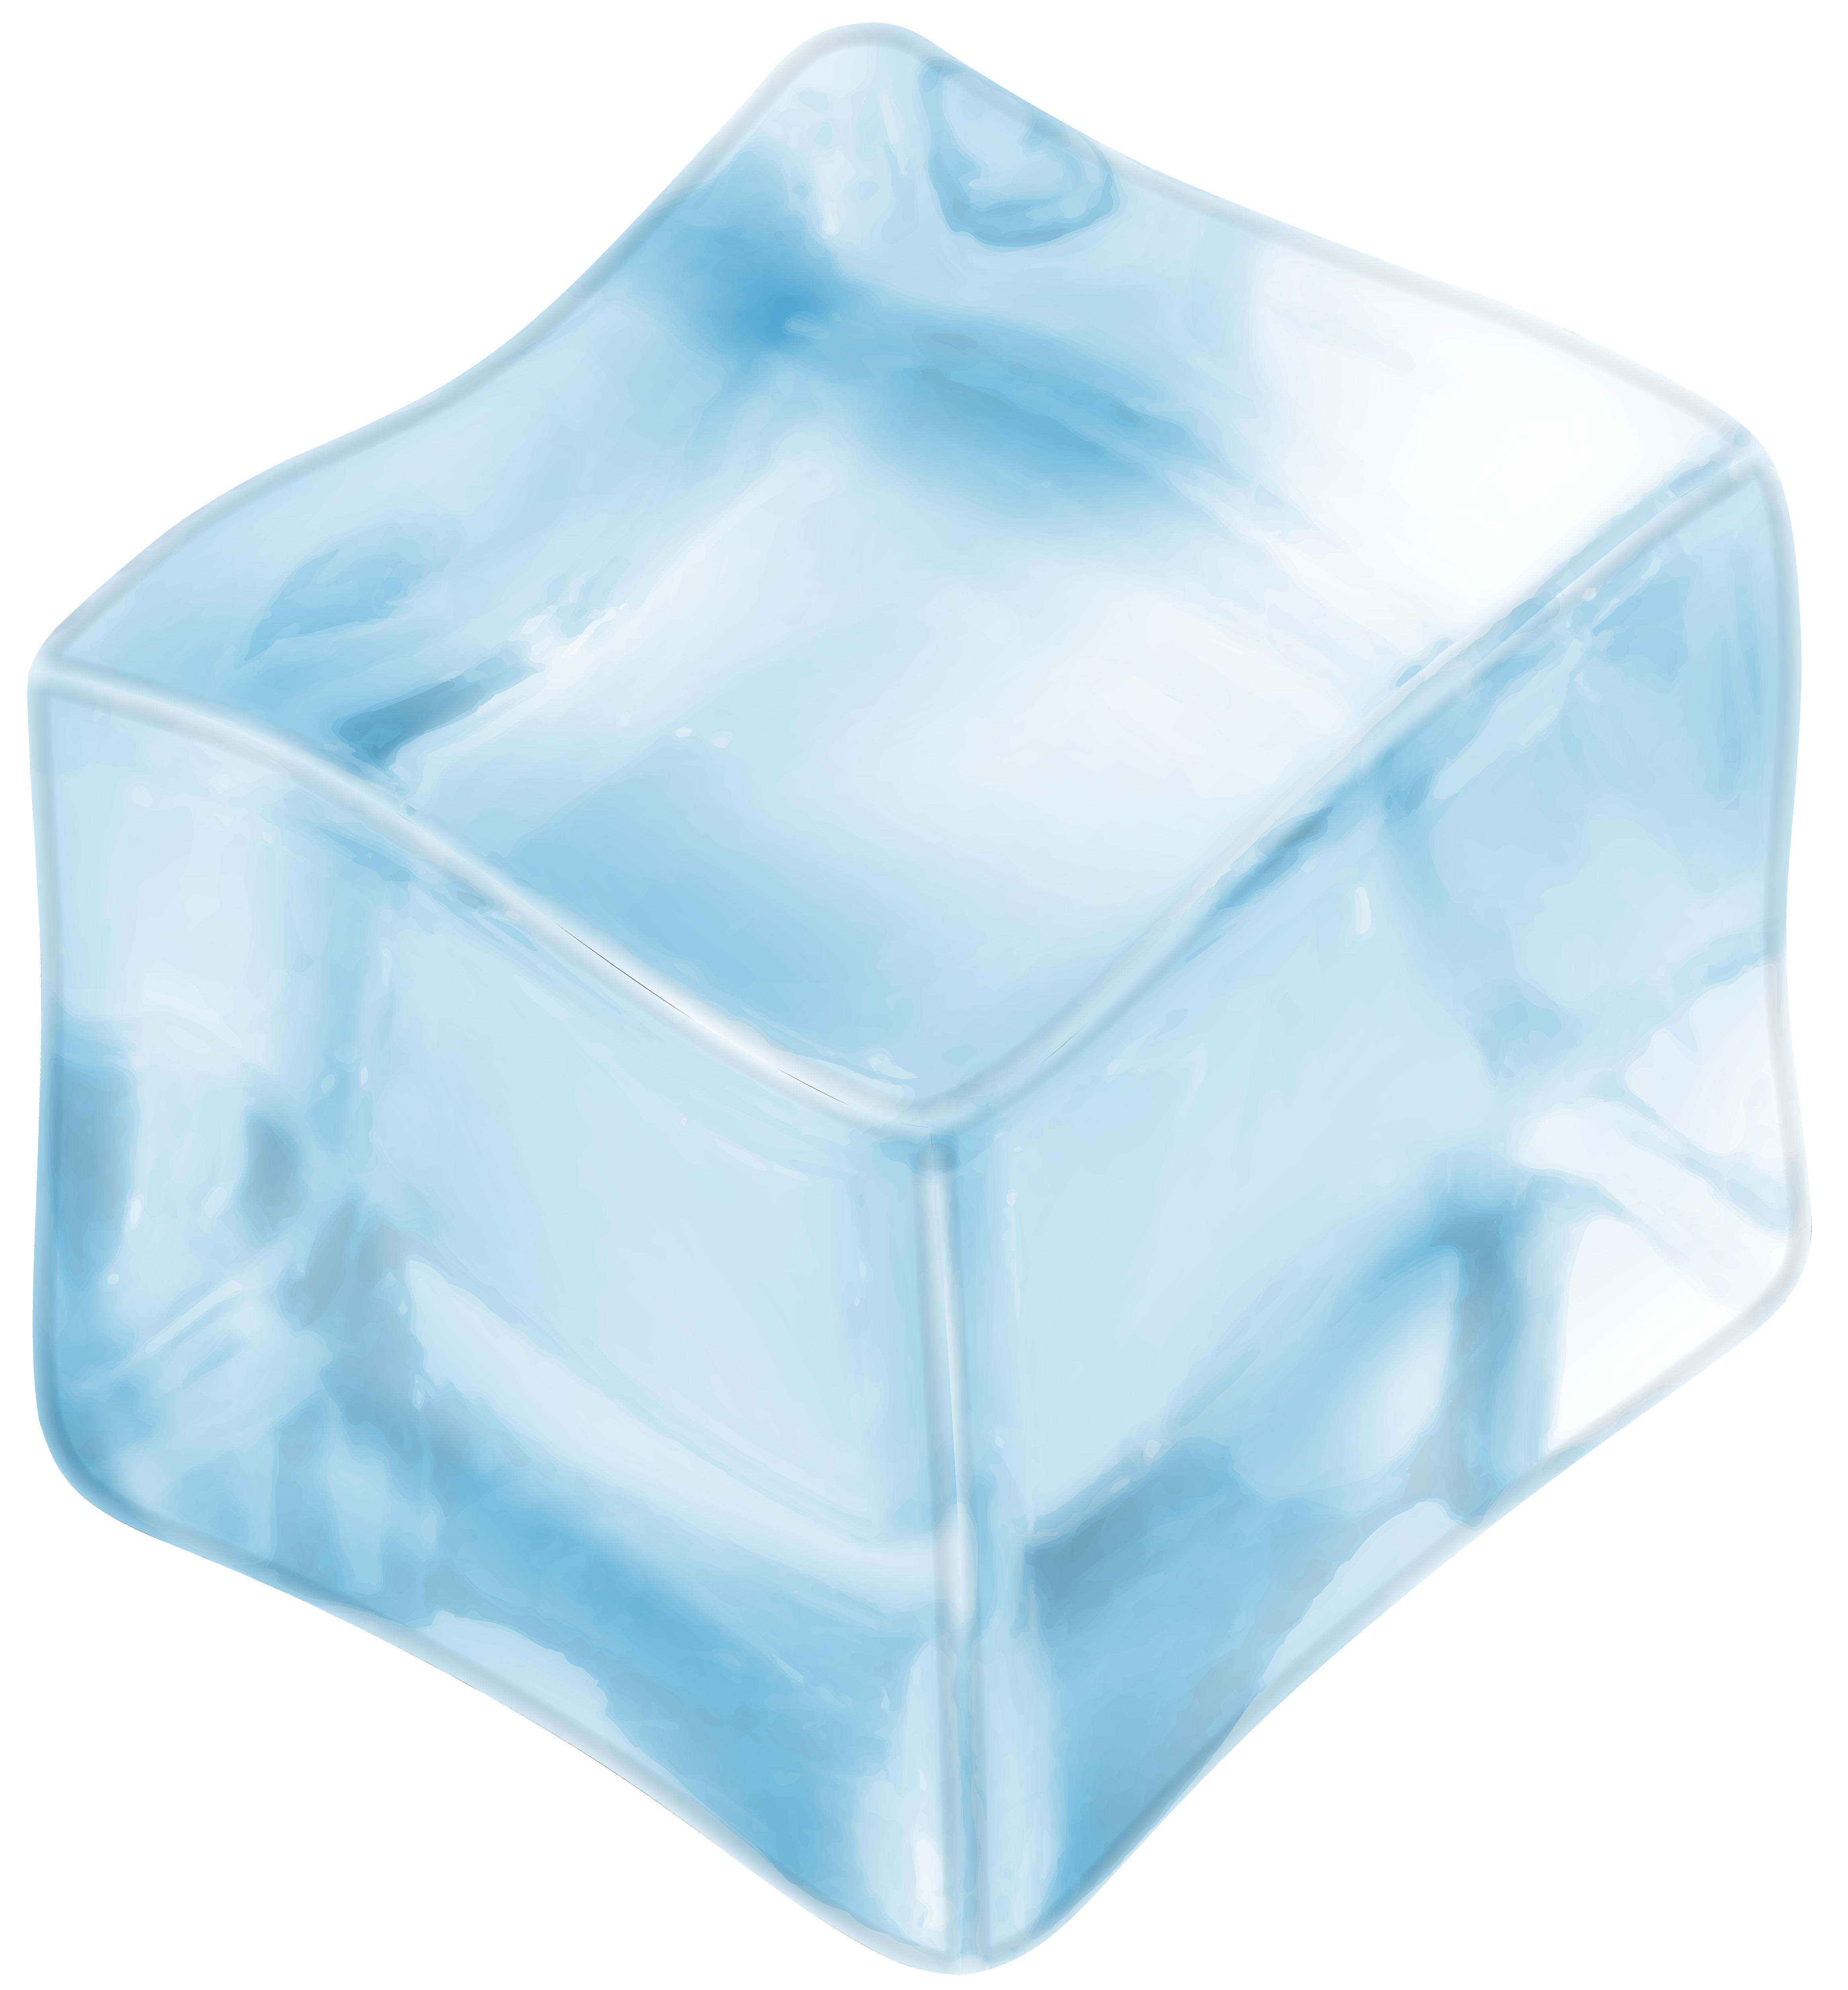 Ice cube transparent png